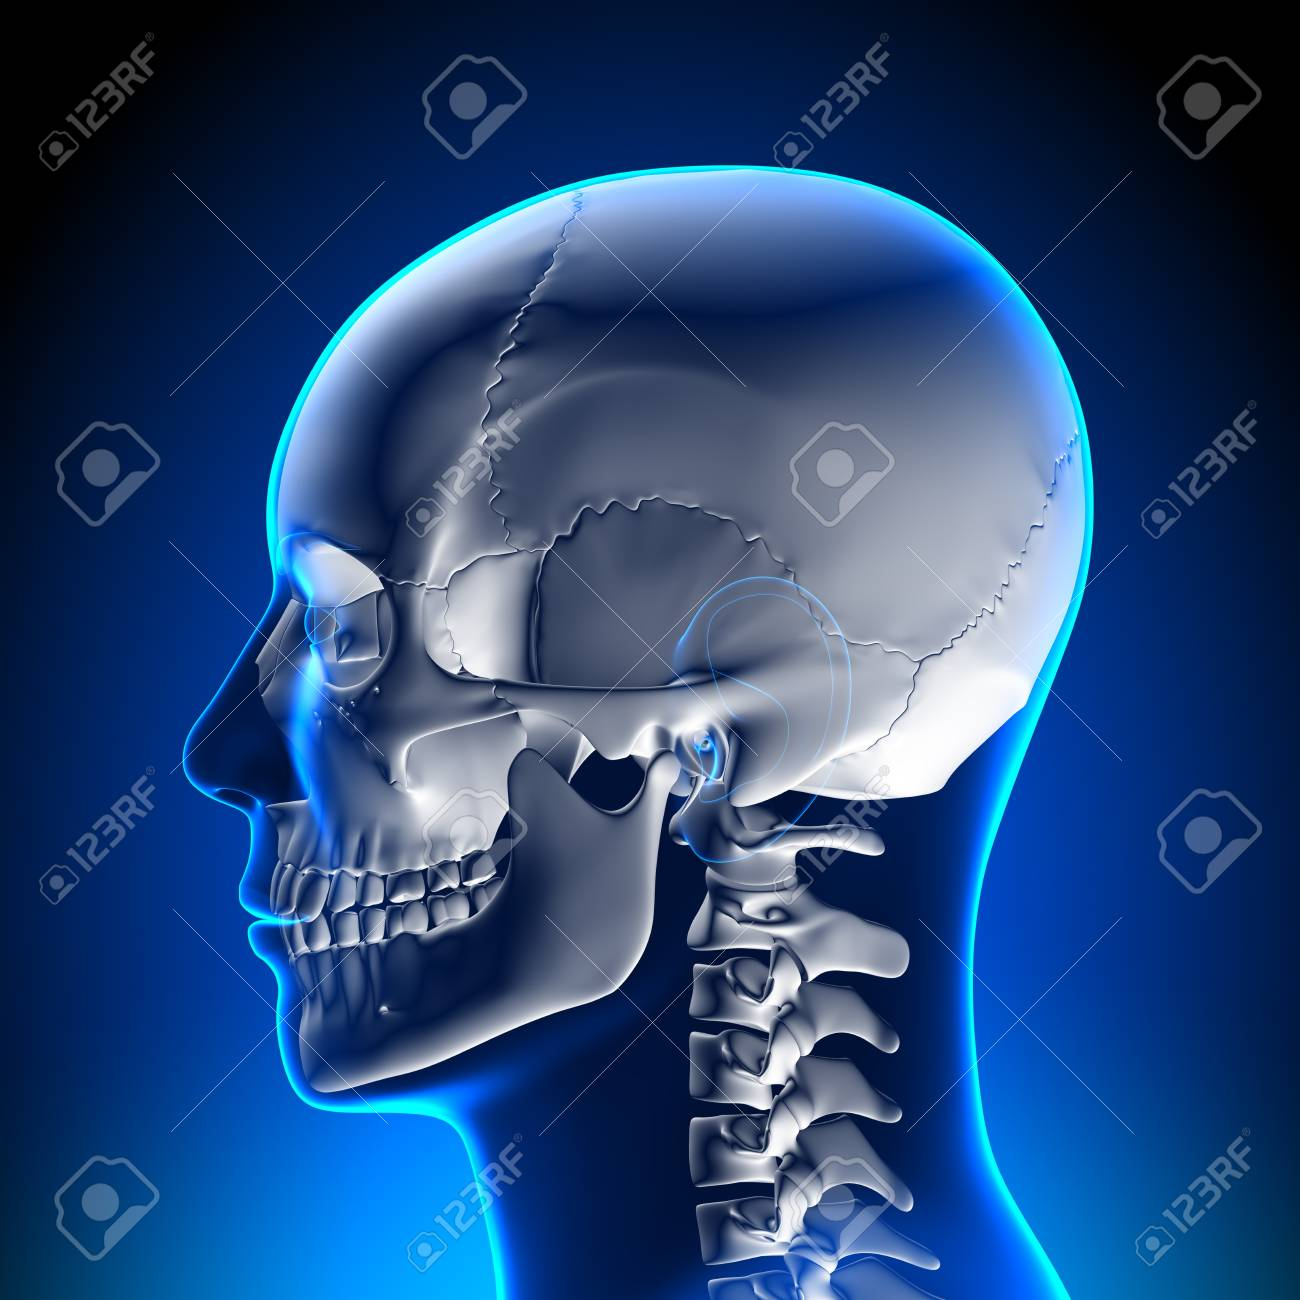 Brain Anatomy White Skull Stock Photo, Picture And Royalty Free ...